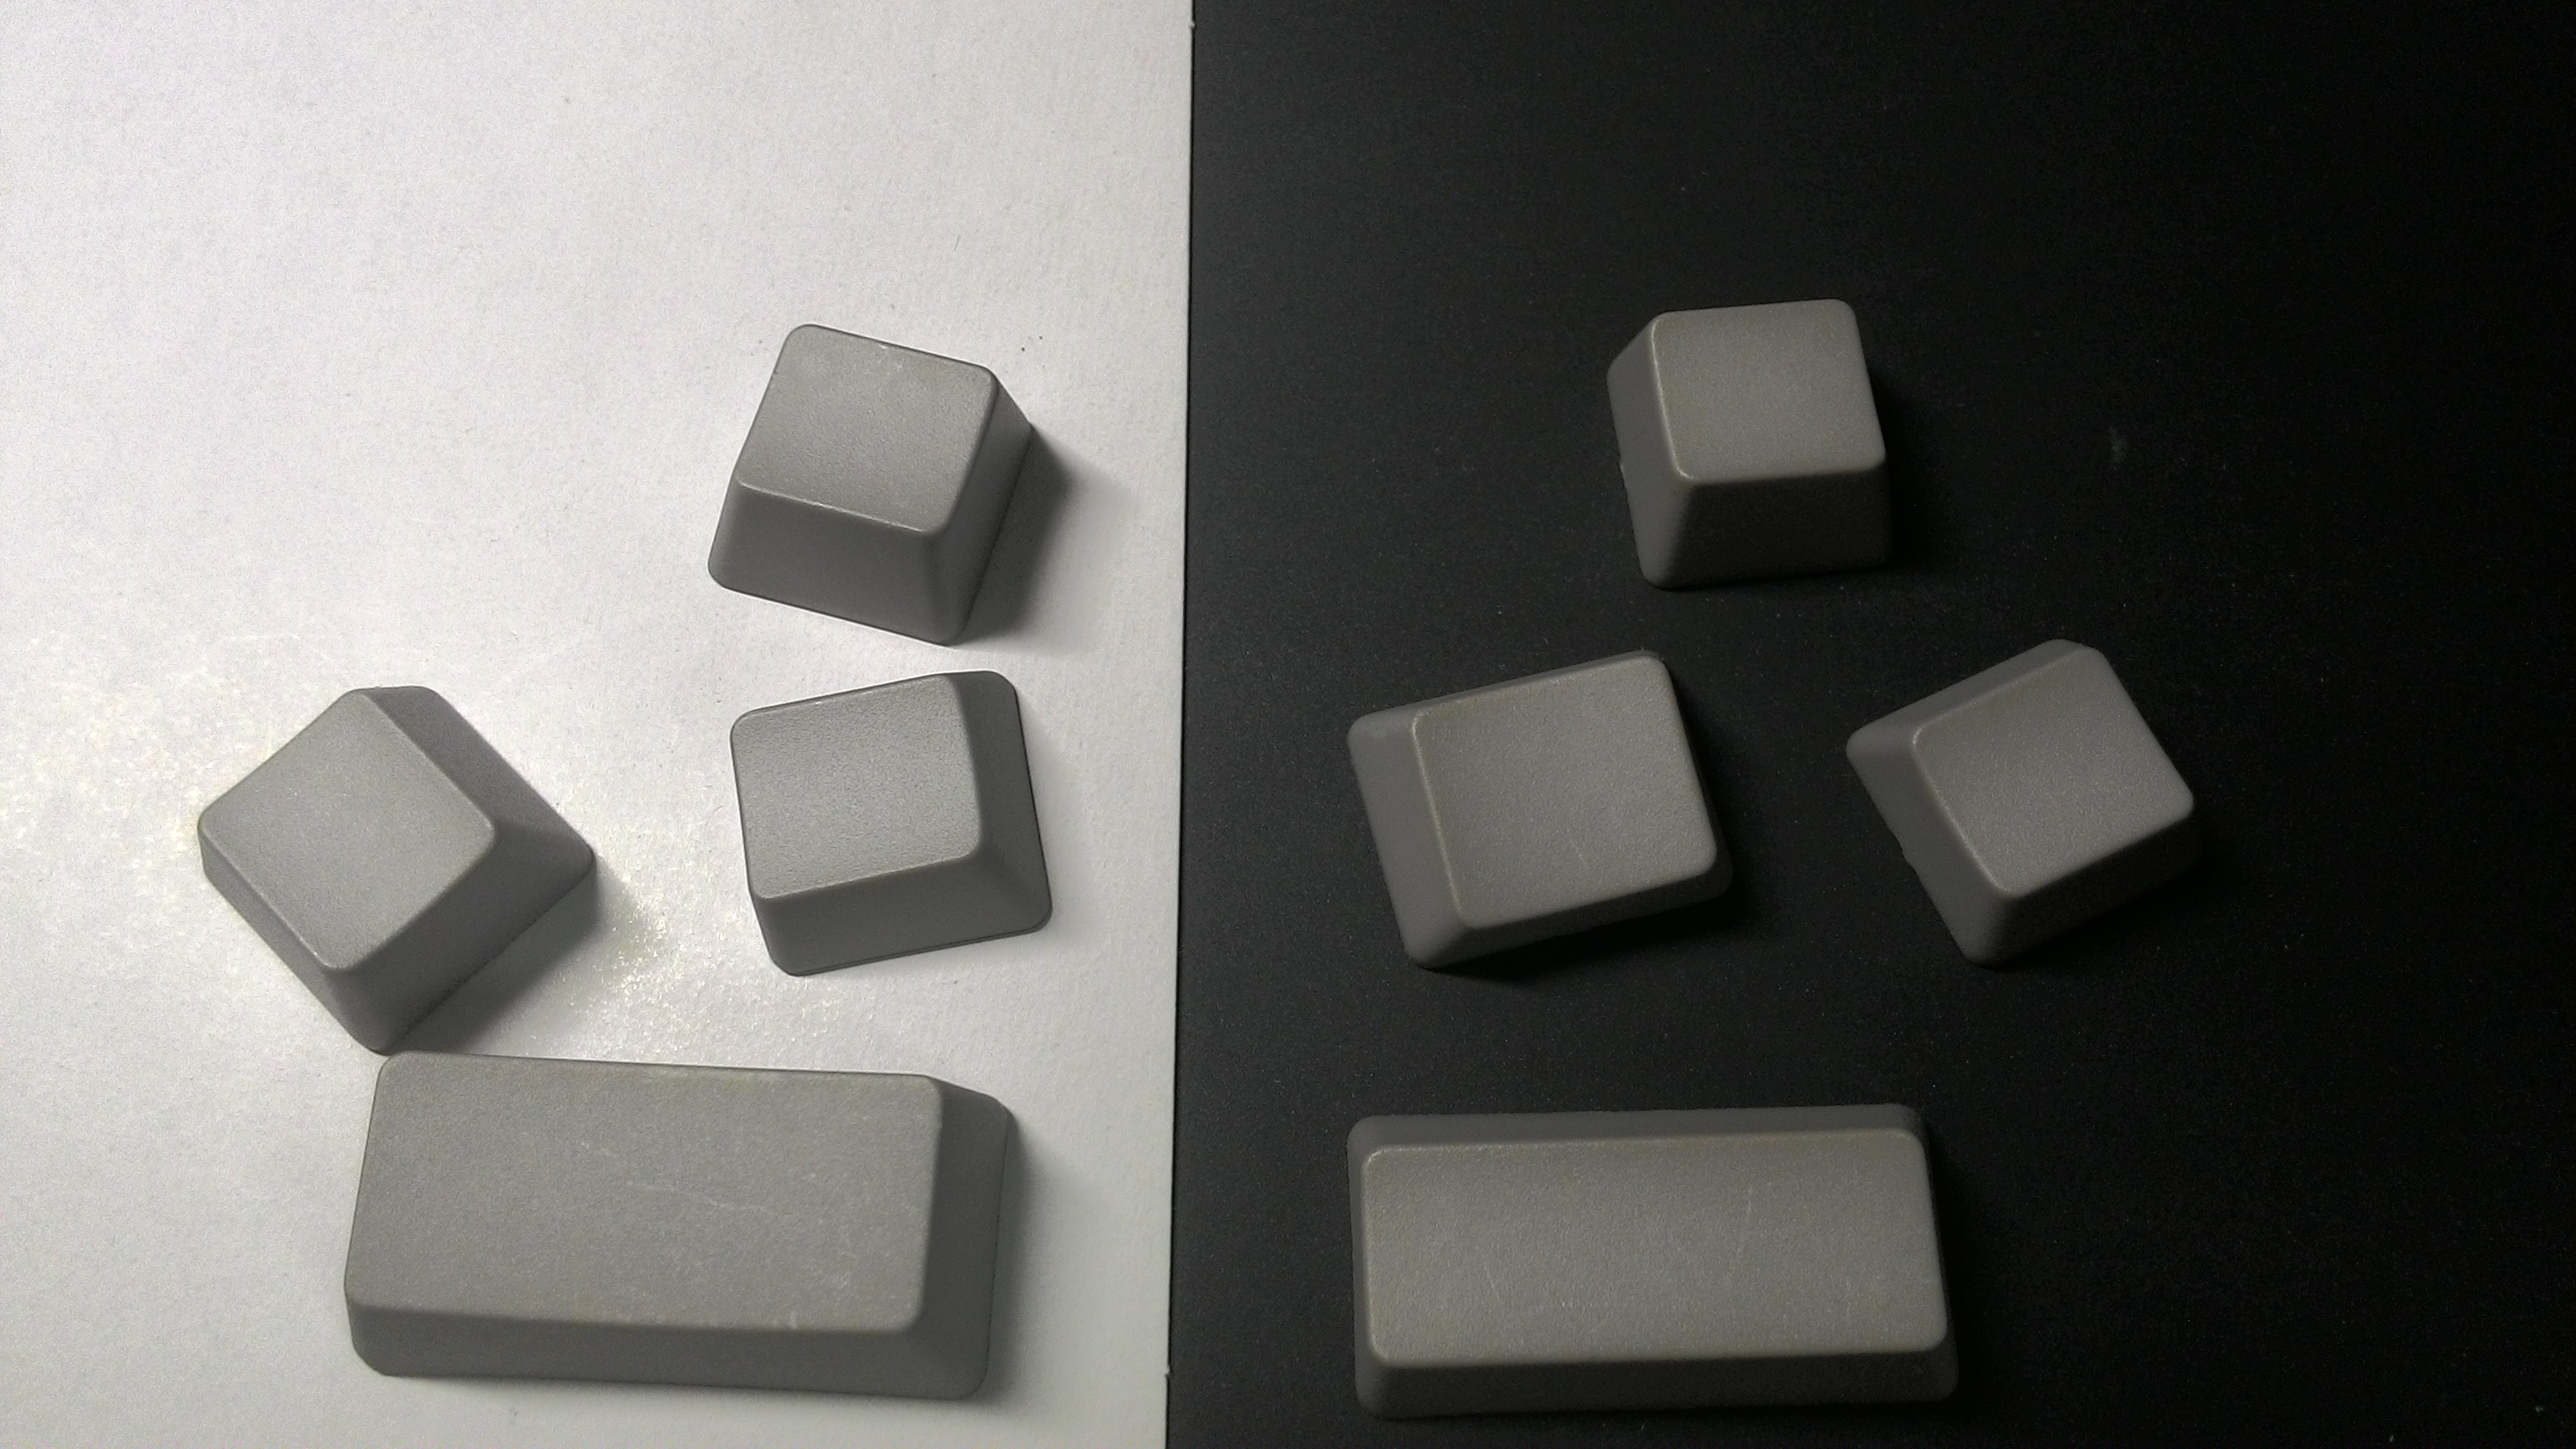 https://github.com/float-tw/float-blog/raw/master/img/pbt-keycap-staining/P_20150503_222457.jpg